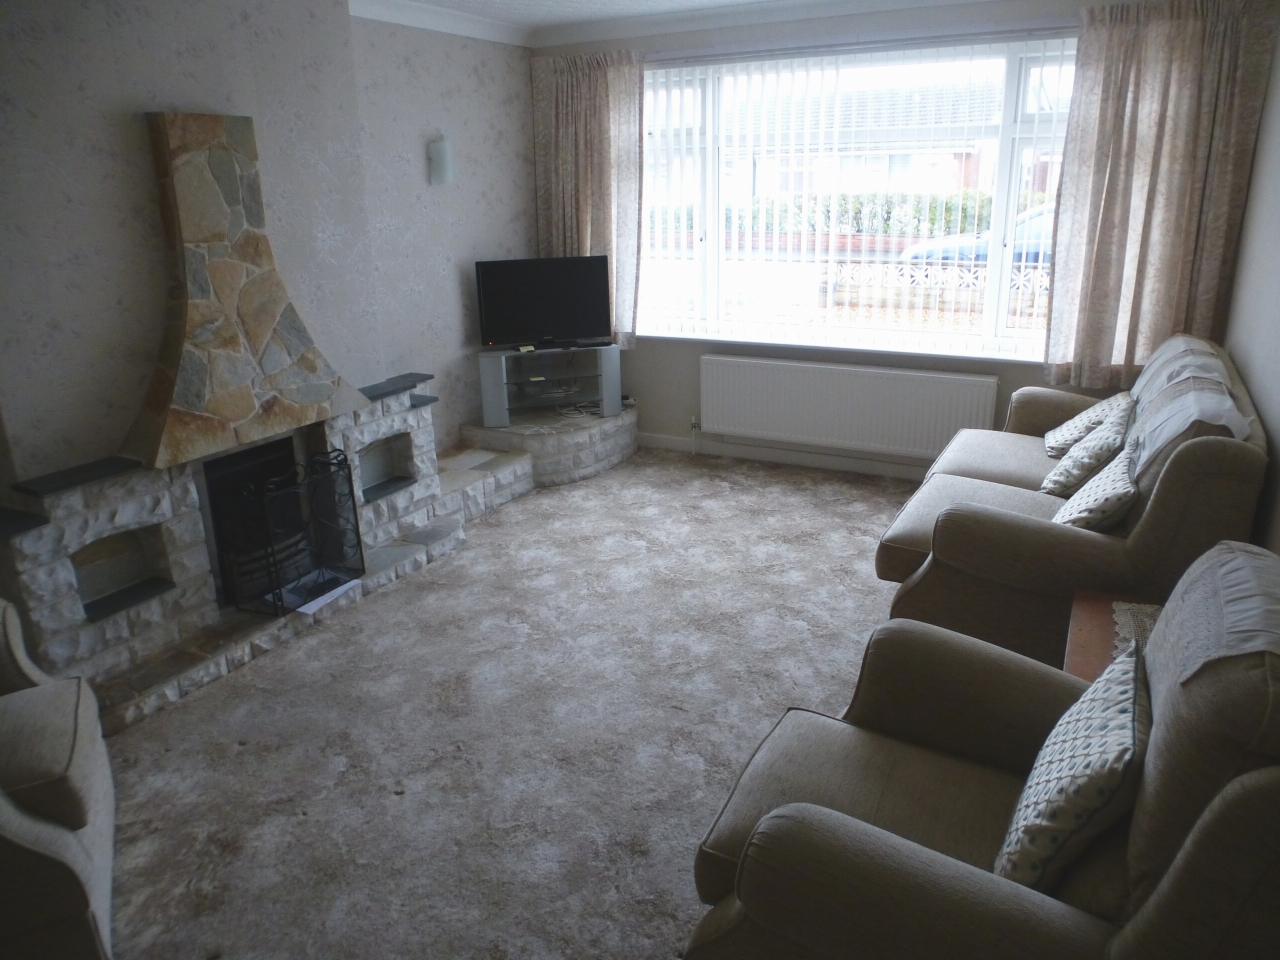 Image 1 of 3 of LOUNGE, on Accommodation Comprising for